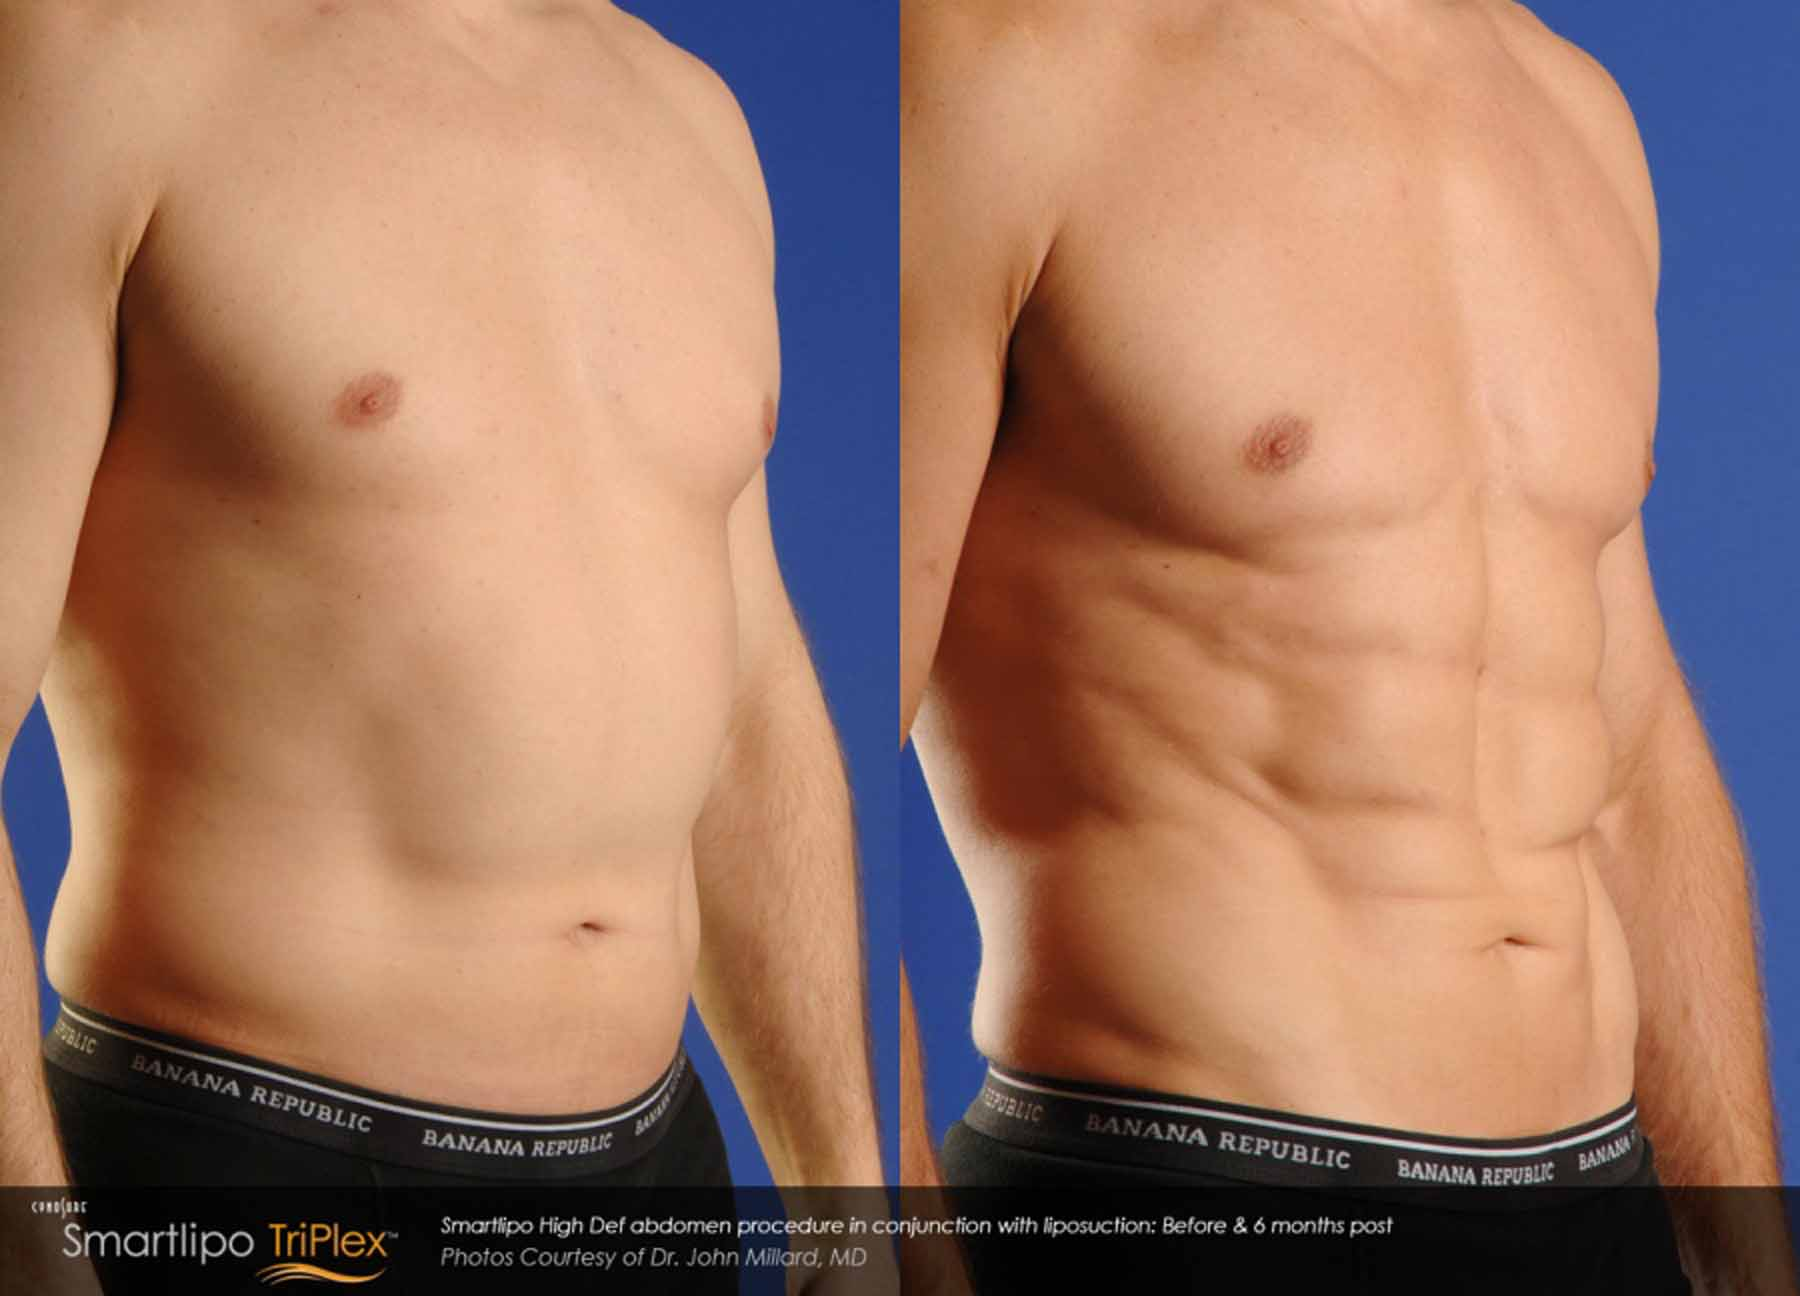 Before and After of man being treated with SmartLipo TriPlex